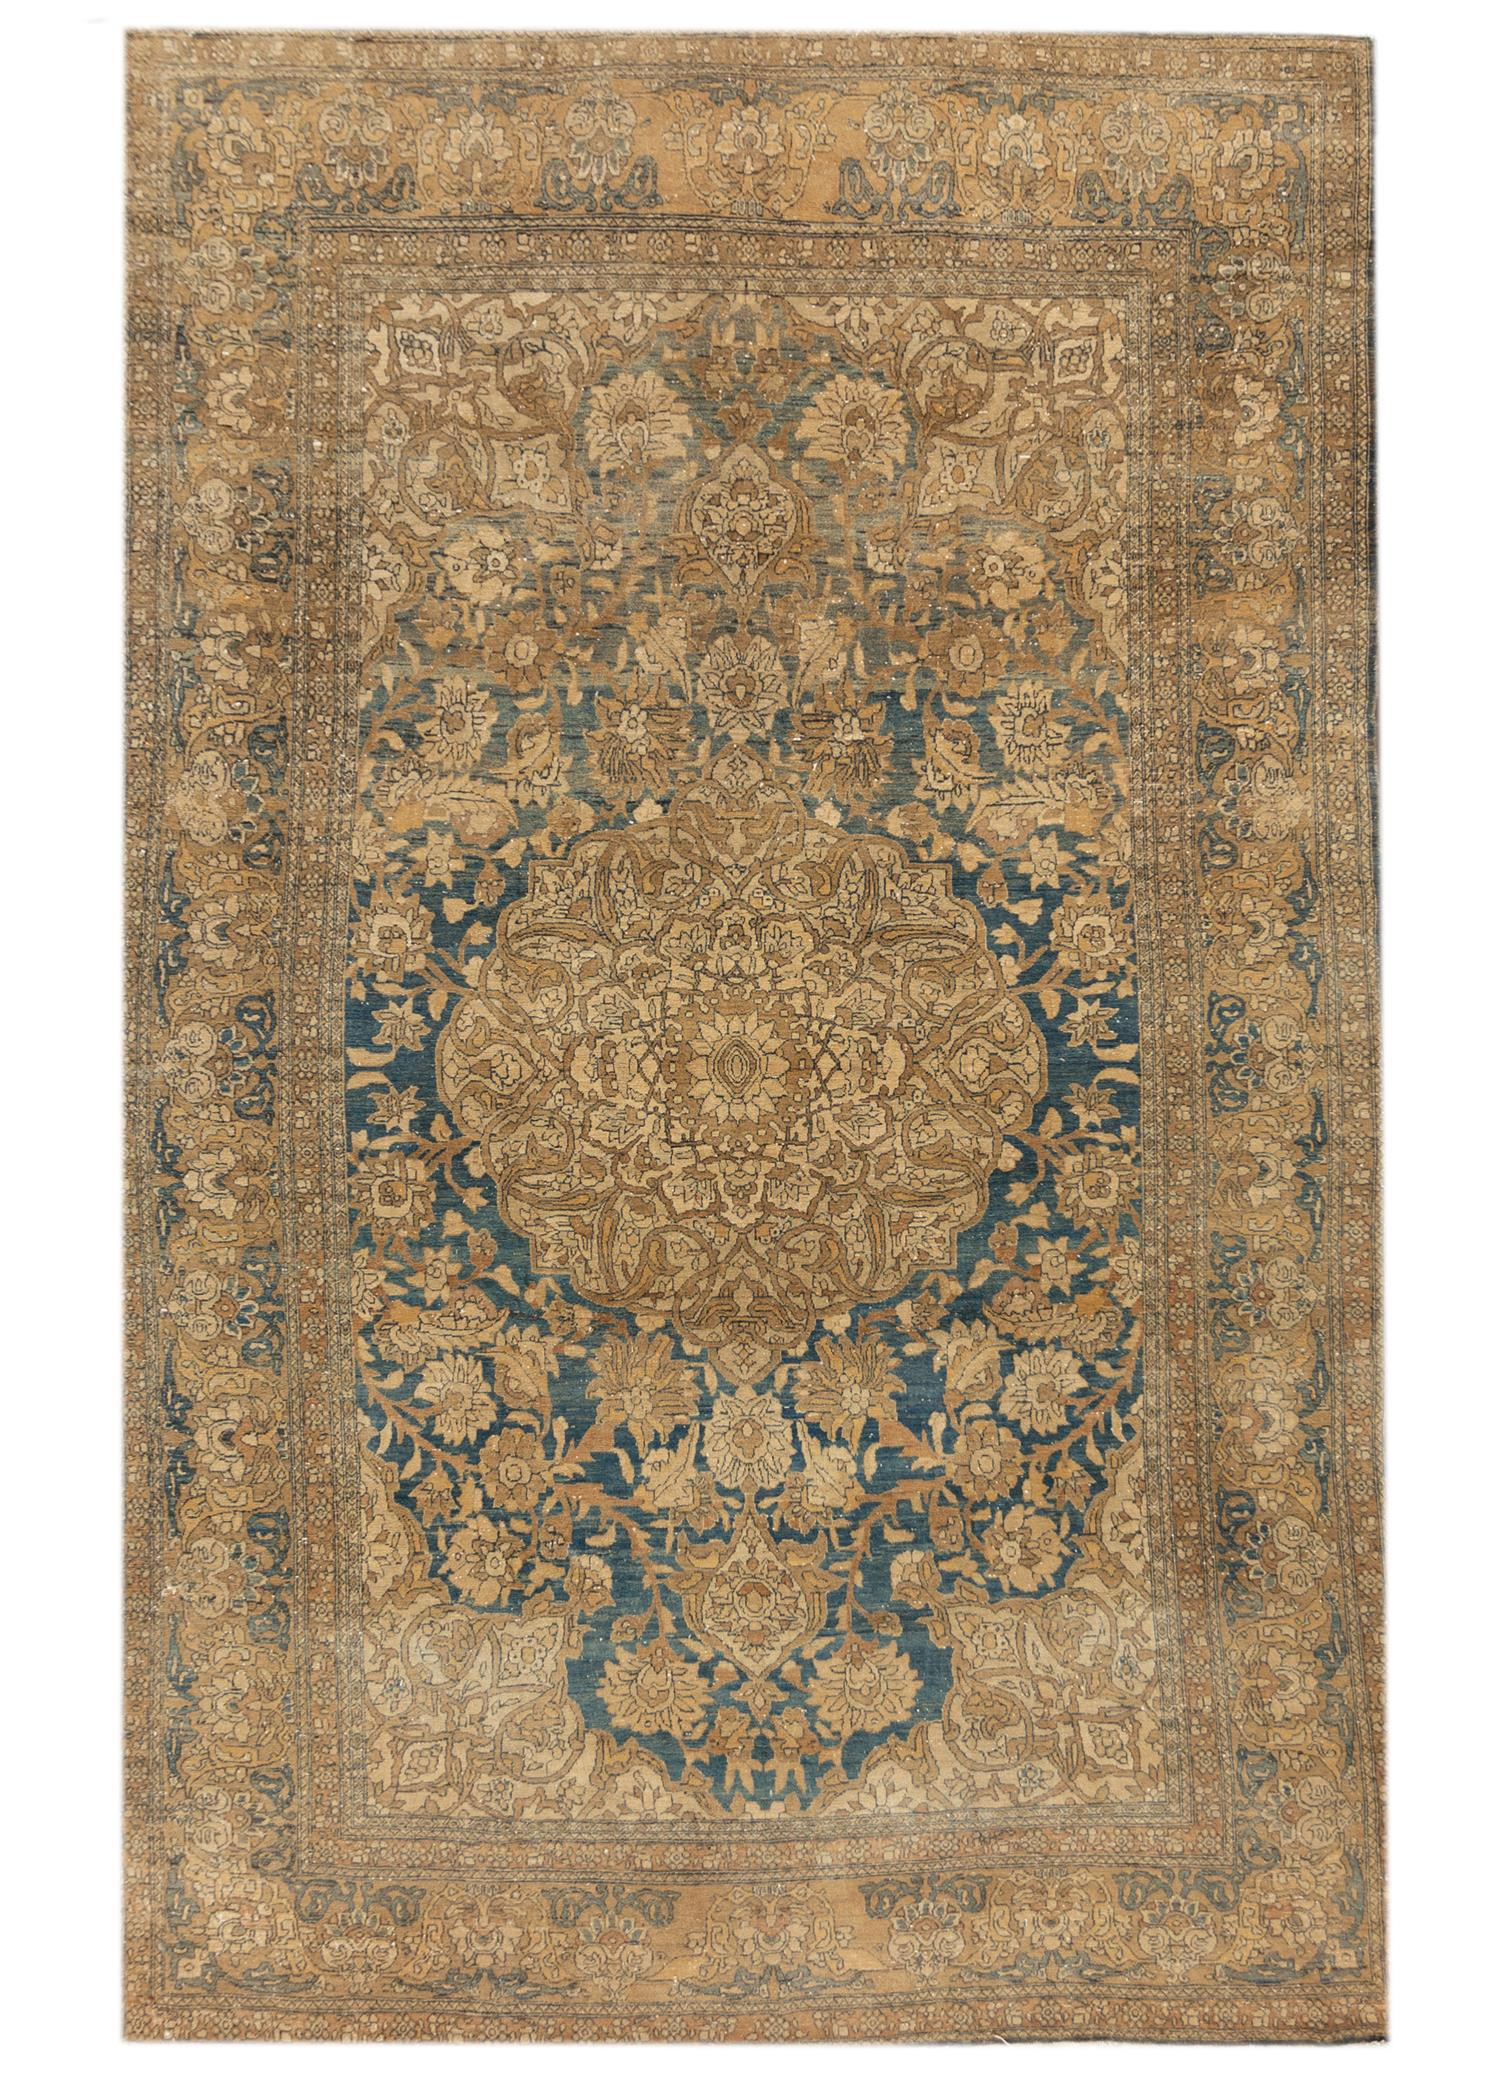 20th Century Antique Tabriz Rug, 9X14